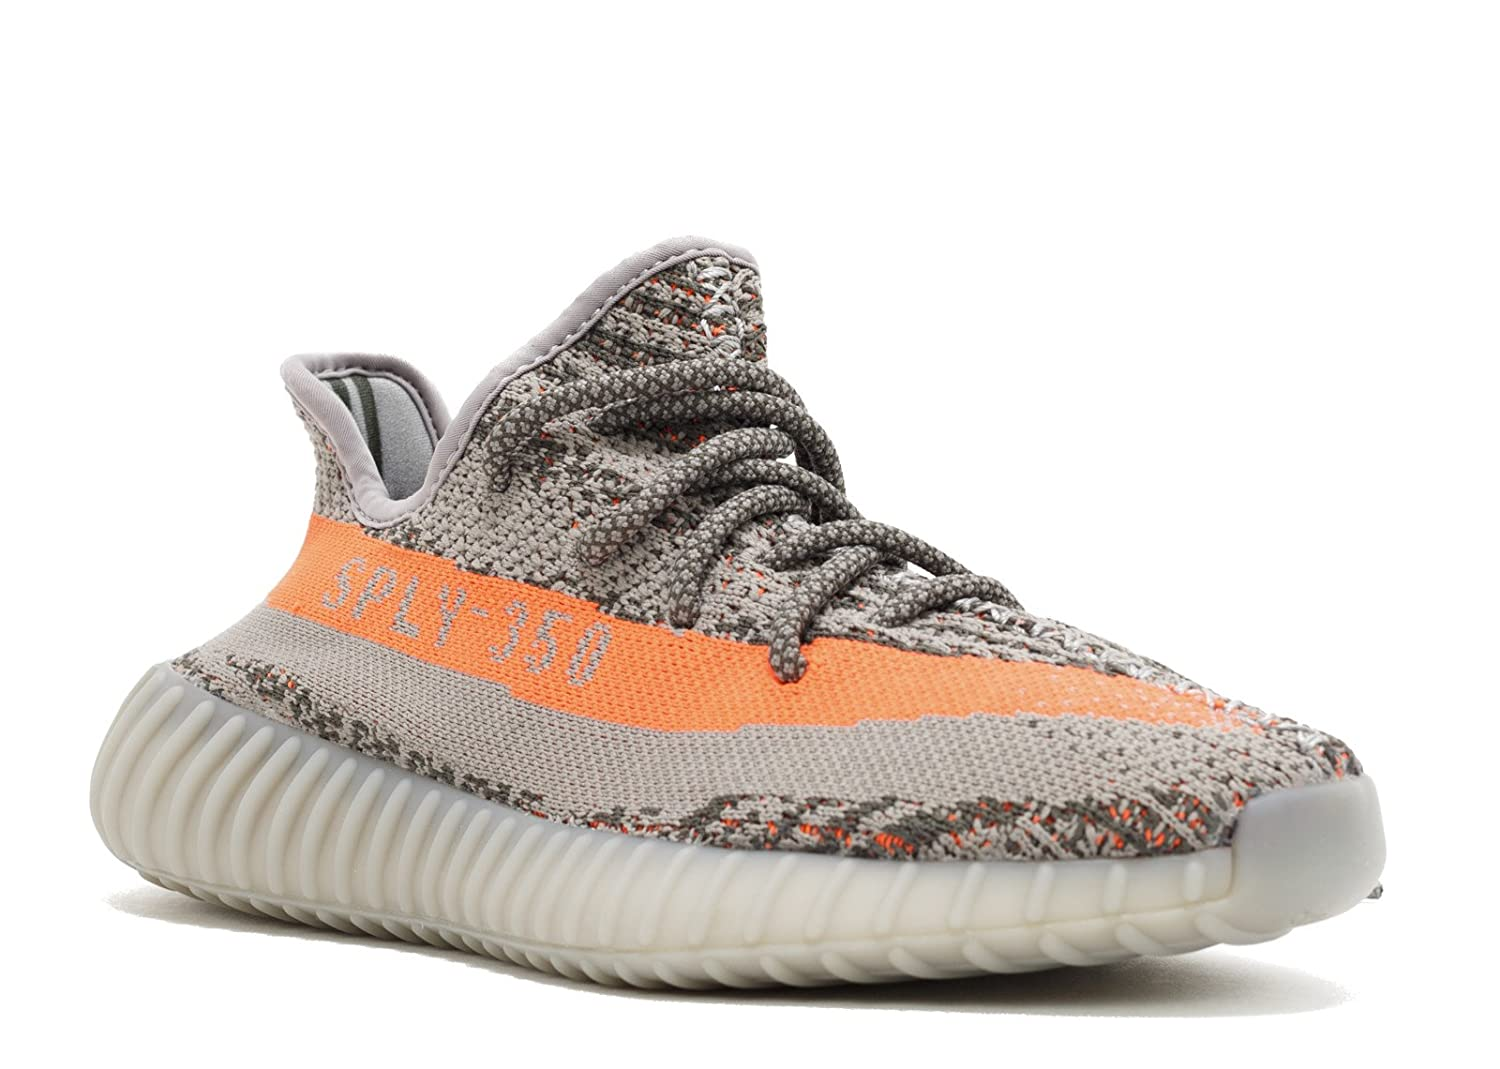 hot sale online 64559 98a3f adidas Mens Yeezy Boost 350 V2 Beluga Grey/Beluga-Solar Red Fabric Size 4